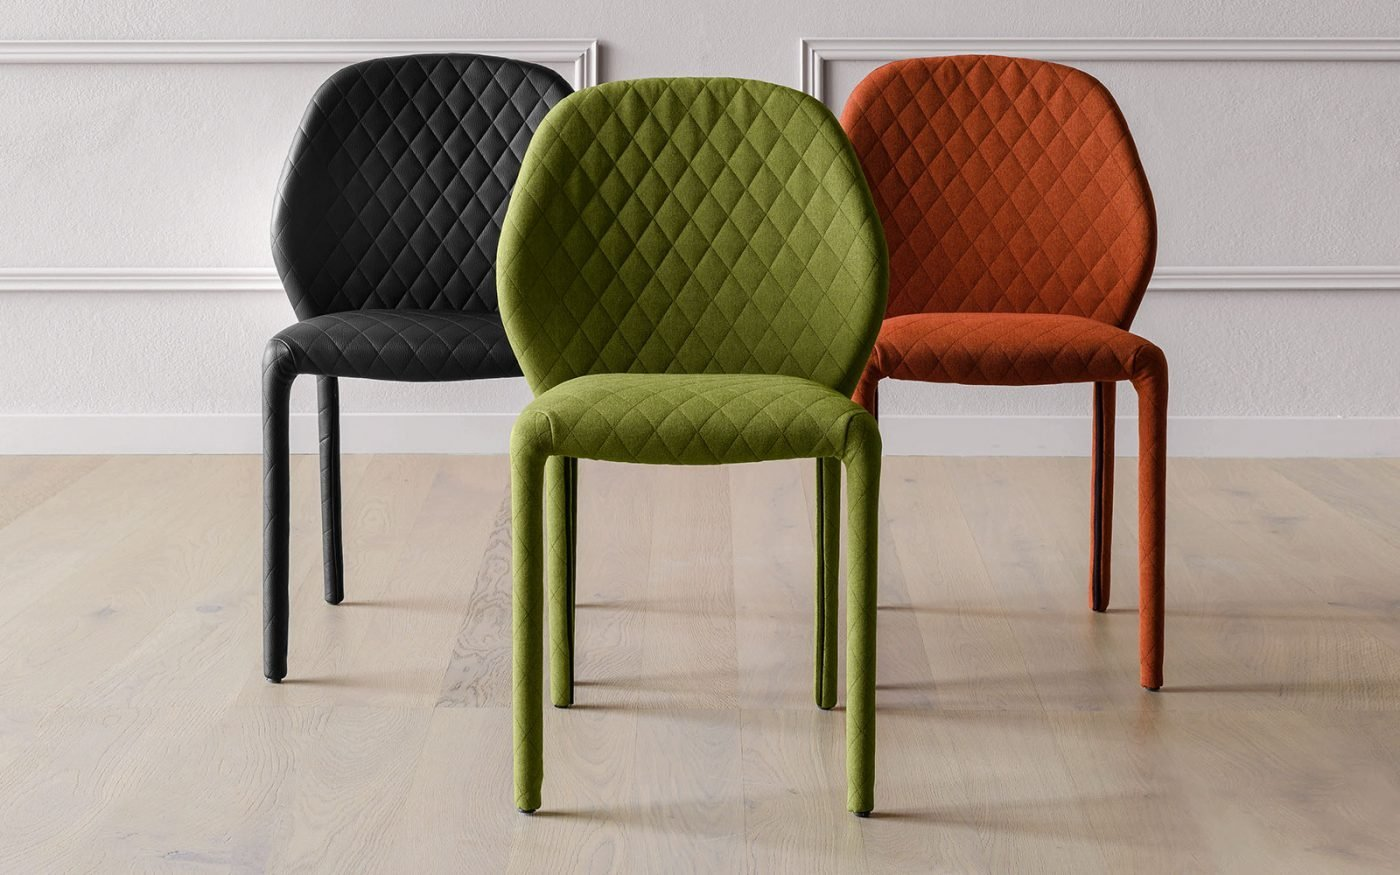 Dumbo chair upholstered green orange black miniforms